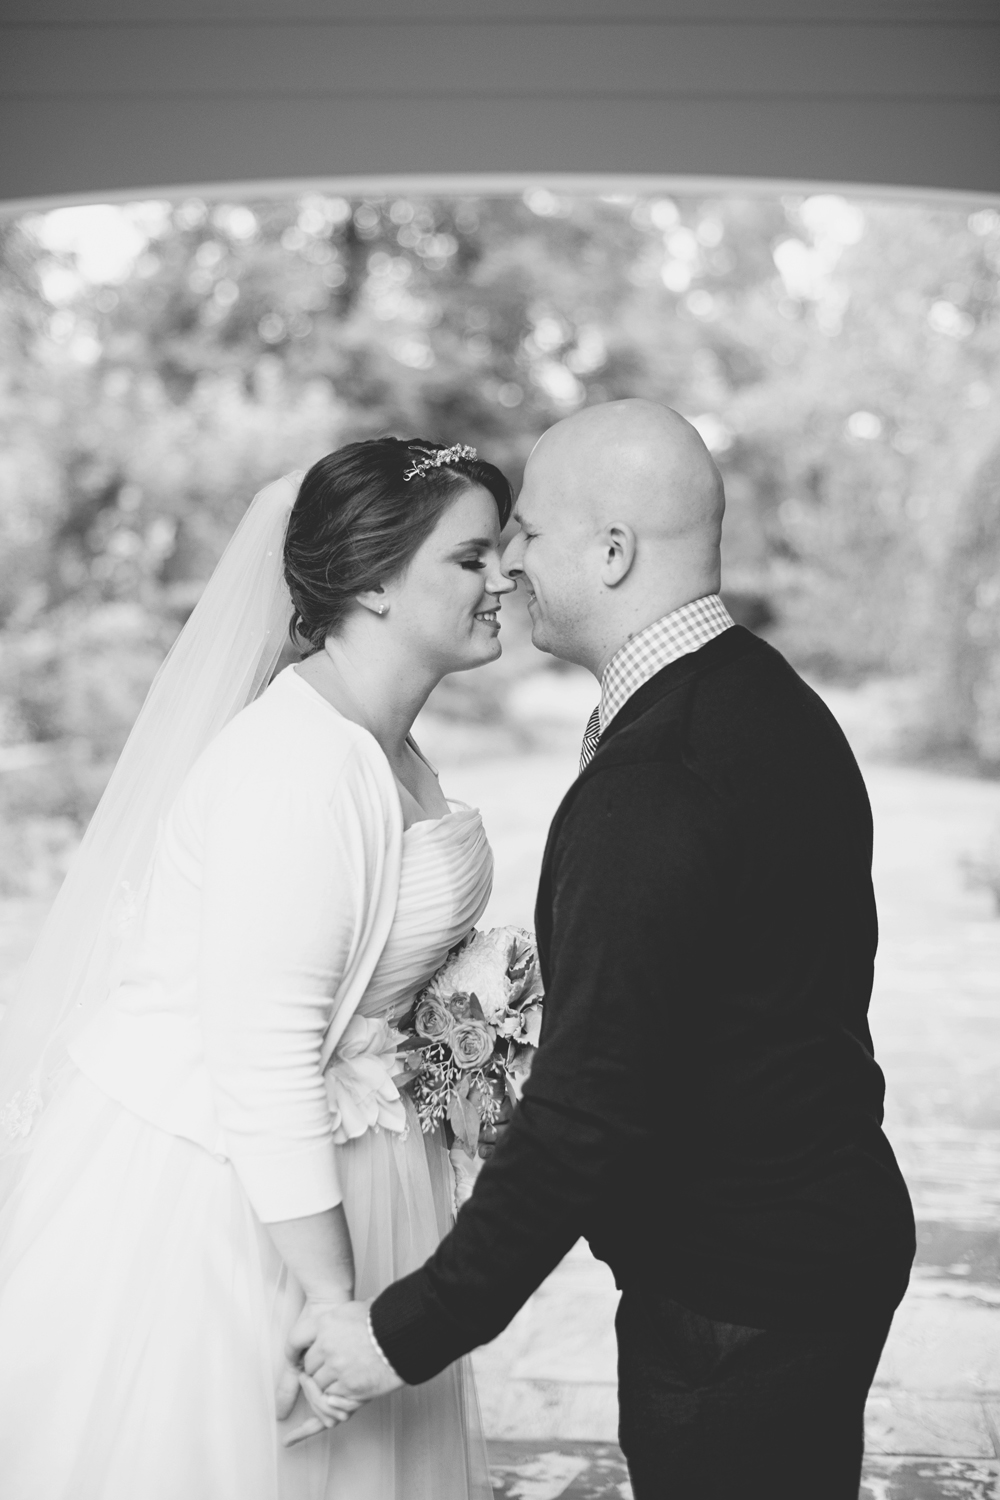 Lewis Ginter Botanic Garden Wedding | Richmond, Virginia, Wedding | Bride and groom portraits